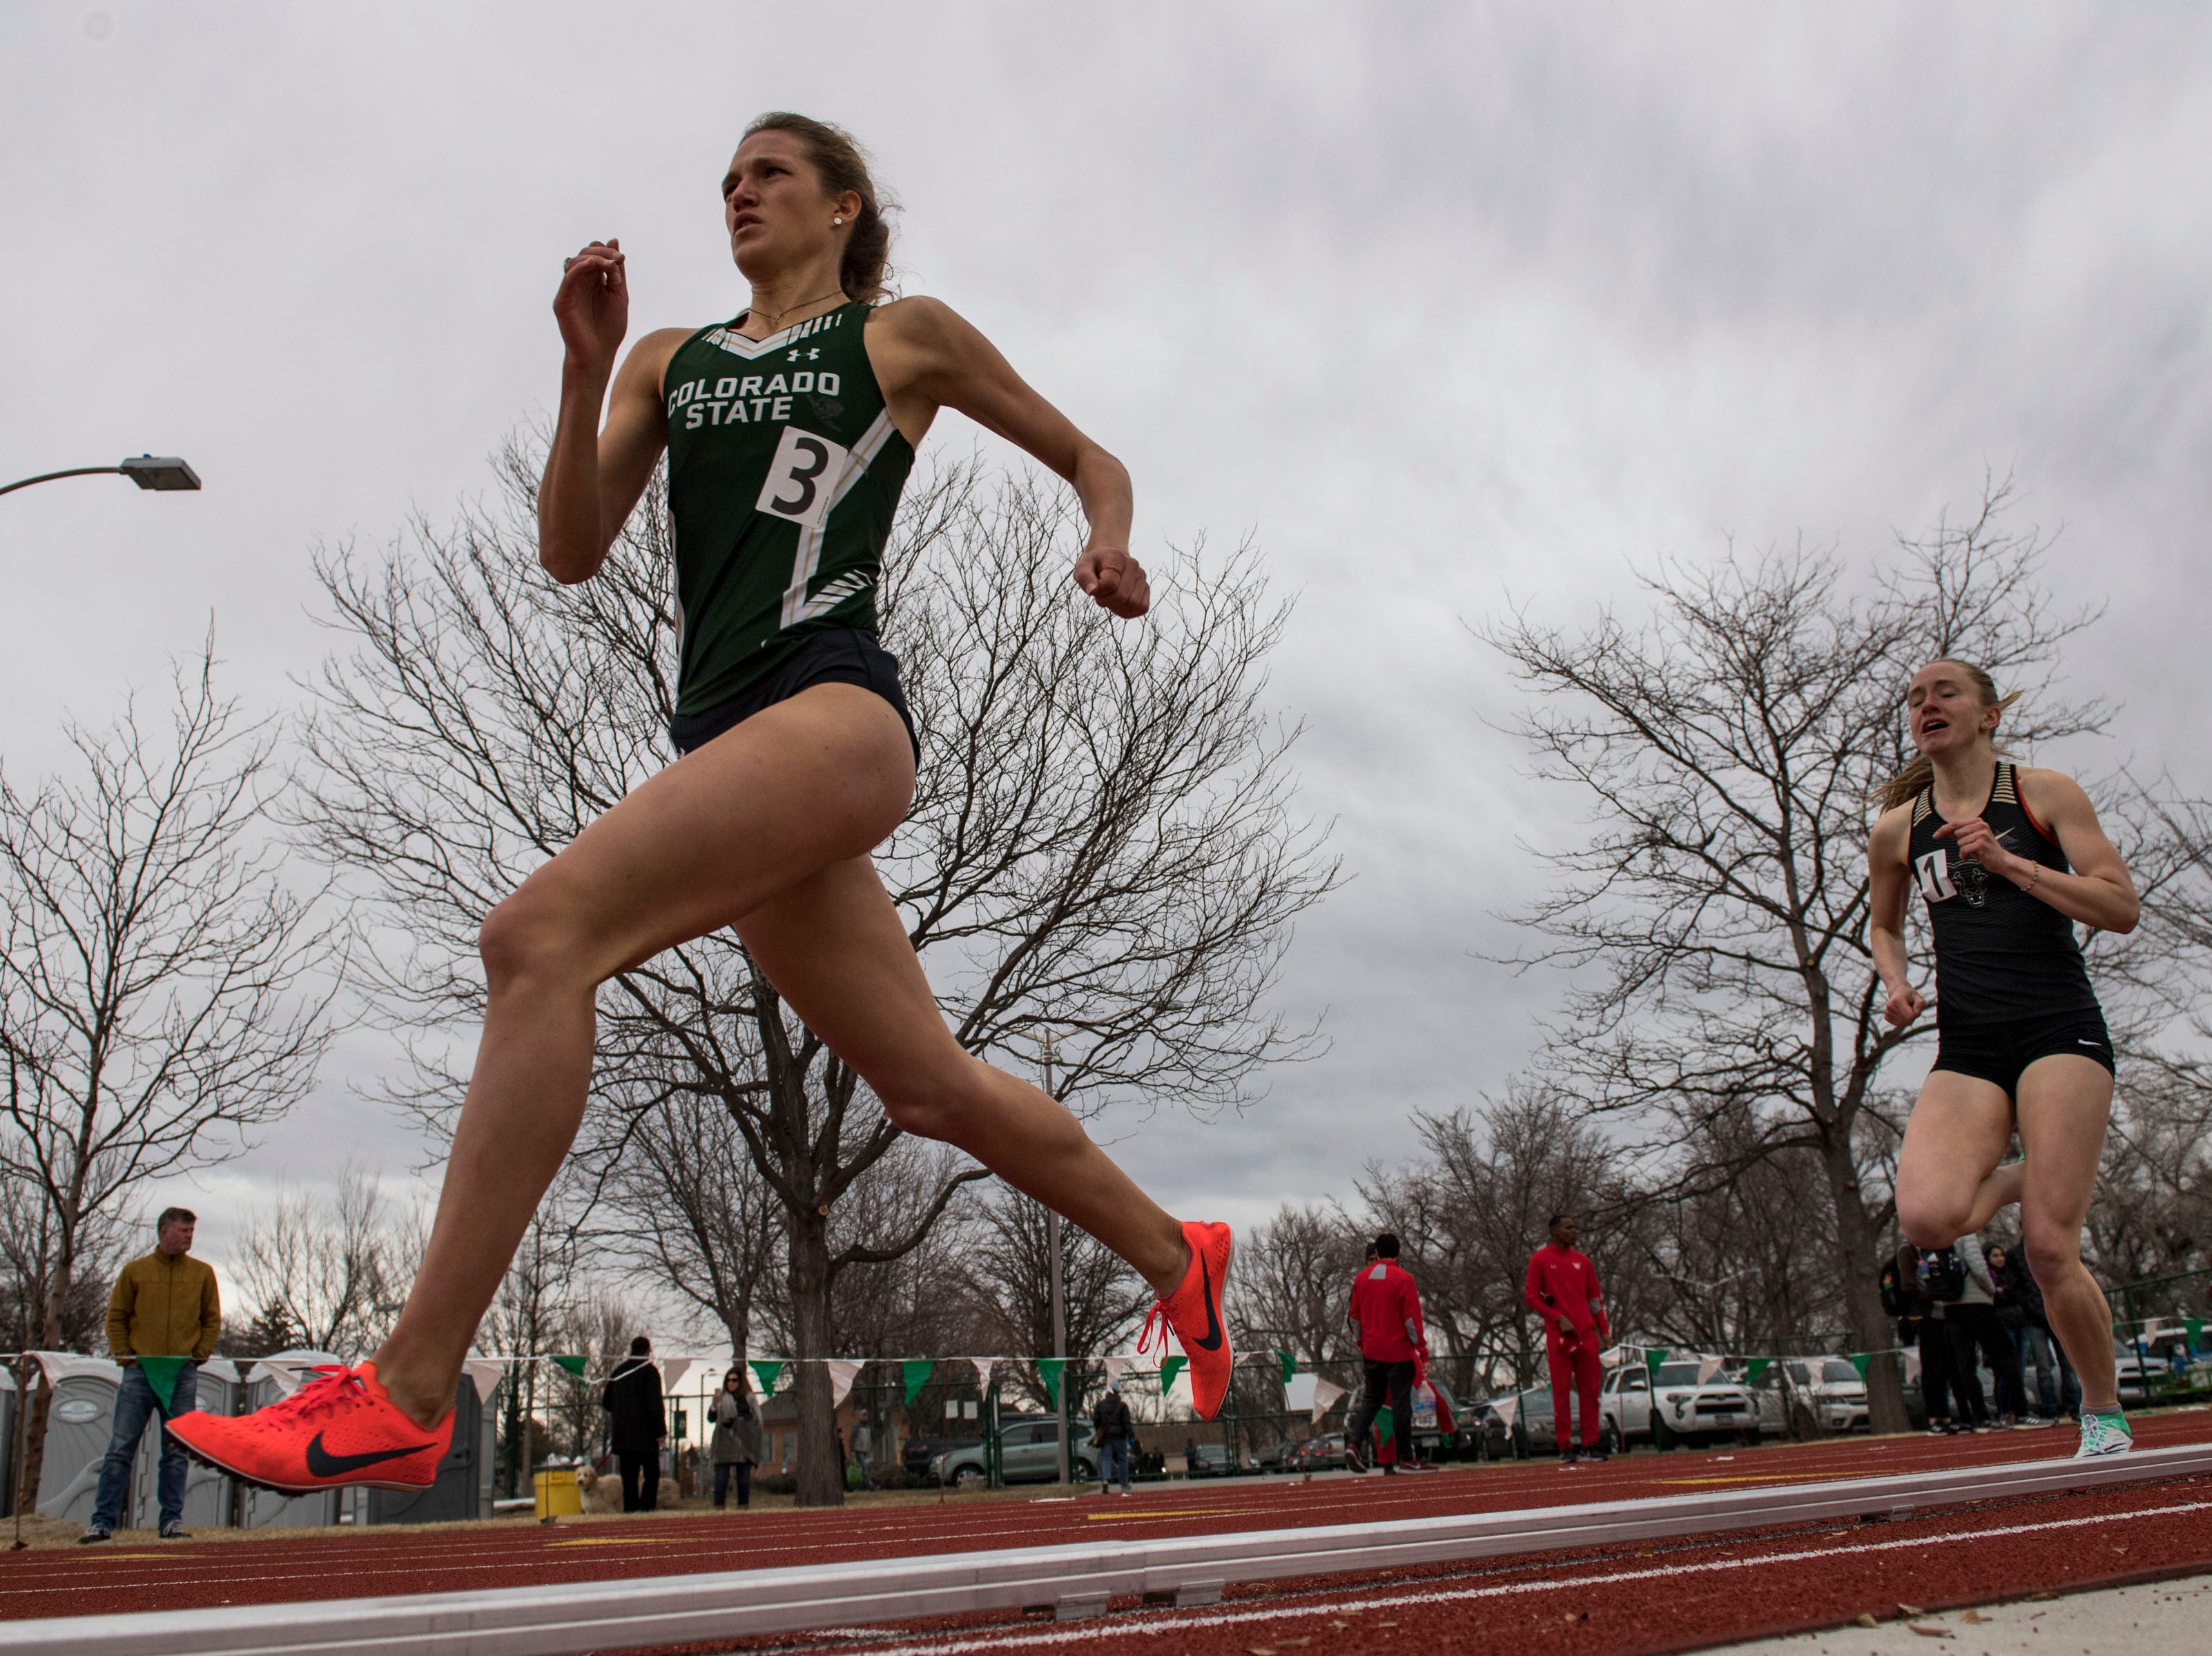 Colorado State University senior Roxy Trotter competes in the women's 800-meter run on Saturday, March 23, 2019, at the Jack Christiansen Memorial Track in Fort Collins, Colo.